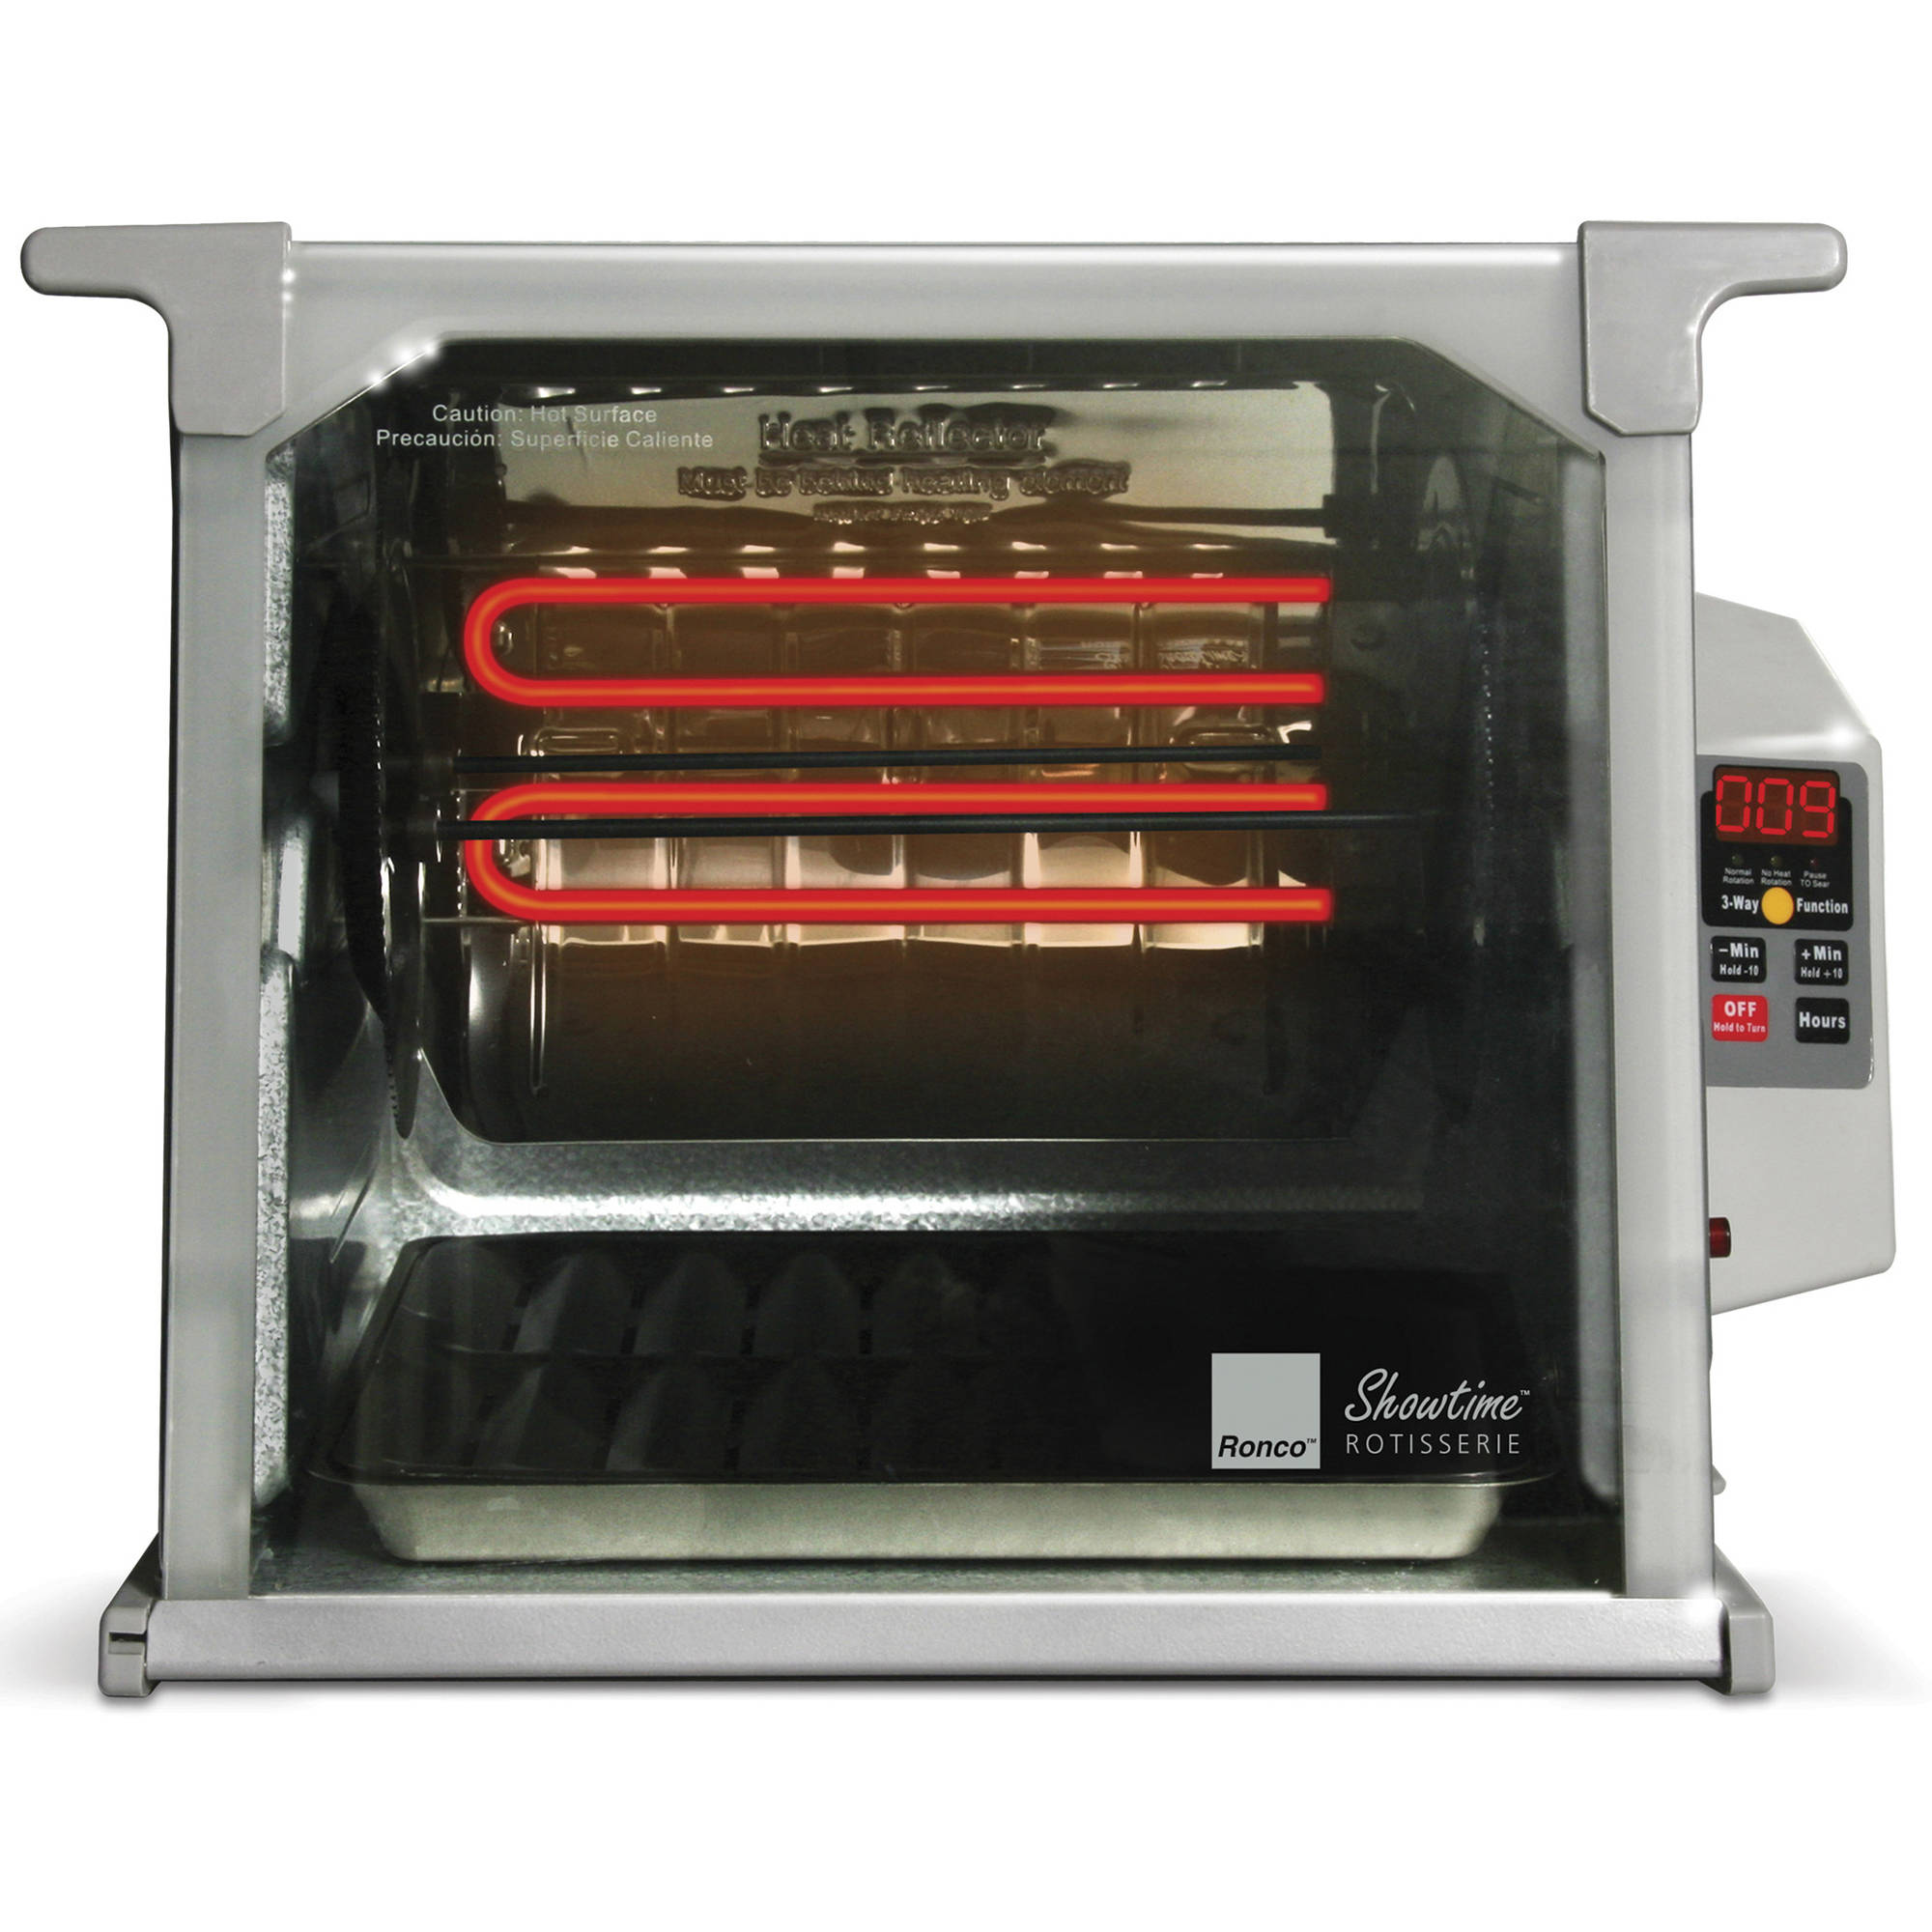 Ronco ST5000PLGEN Digital Showtime Rotisserie and BBQ Oven, Platinum Edition